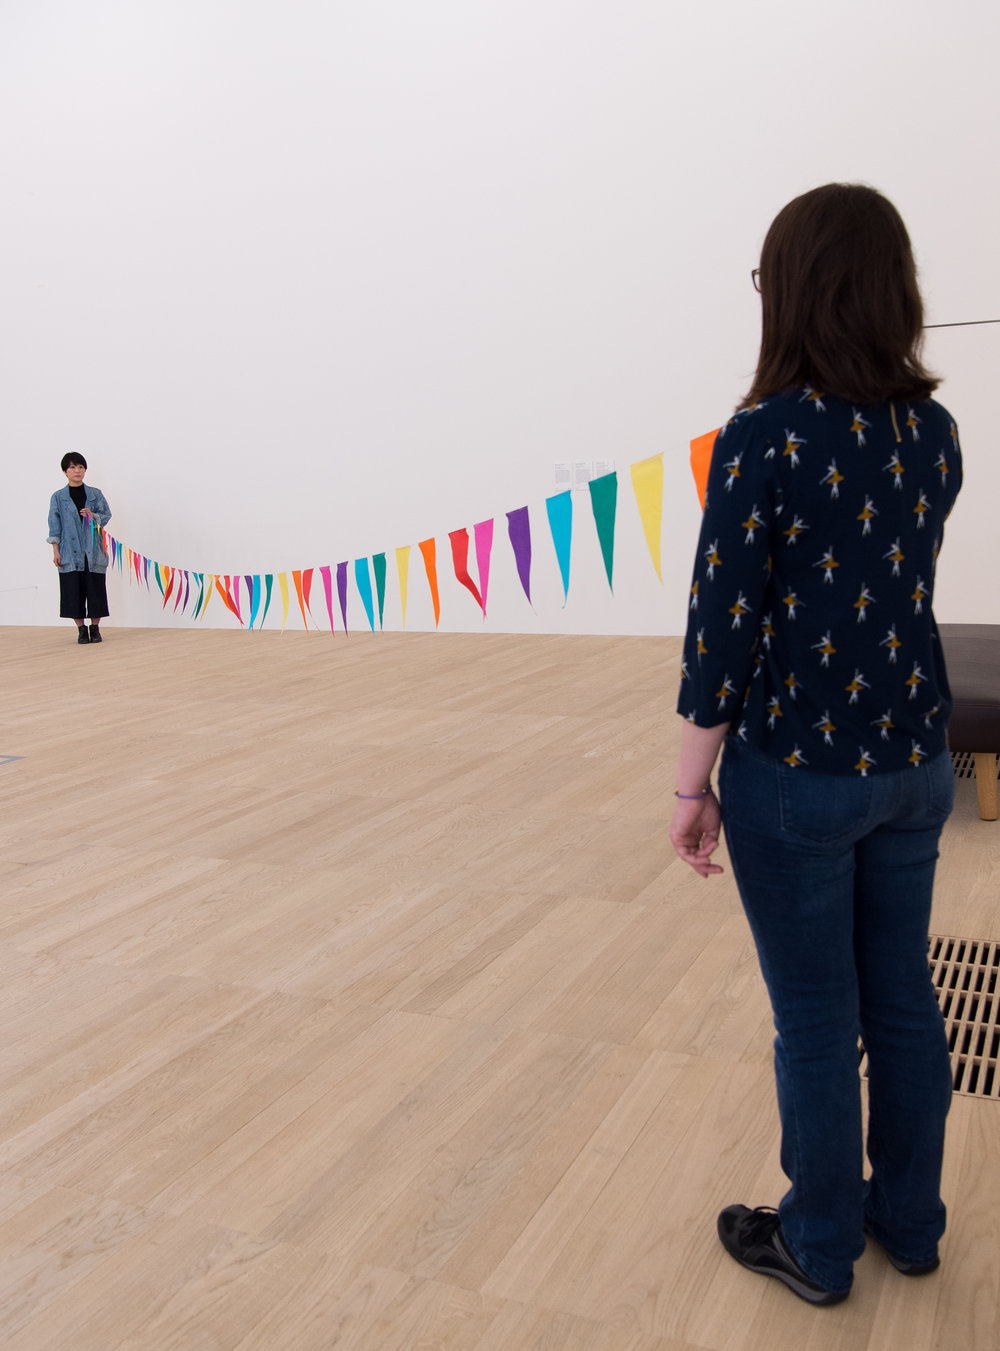 Strangers  2008-2011  Paper bunting and performers  Dimensions variable  Switch House, Tate Modern, London, UK  2016